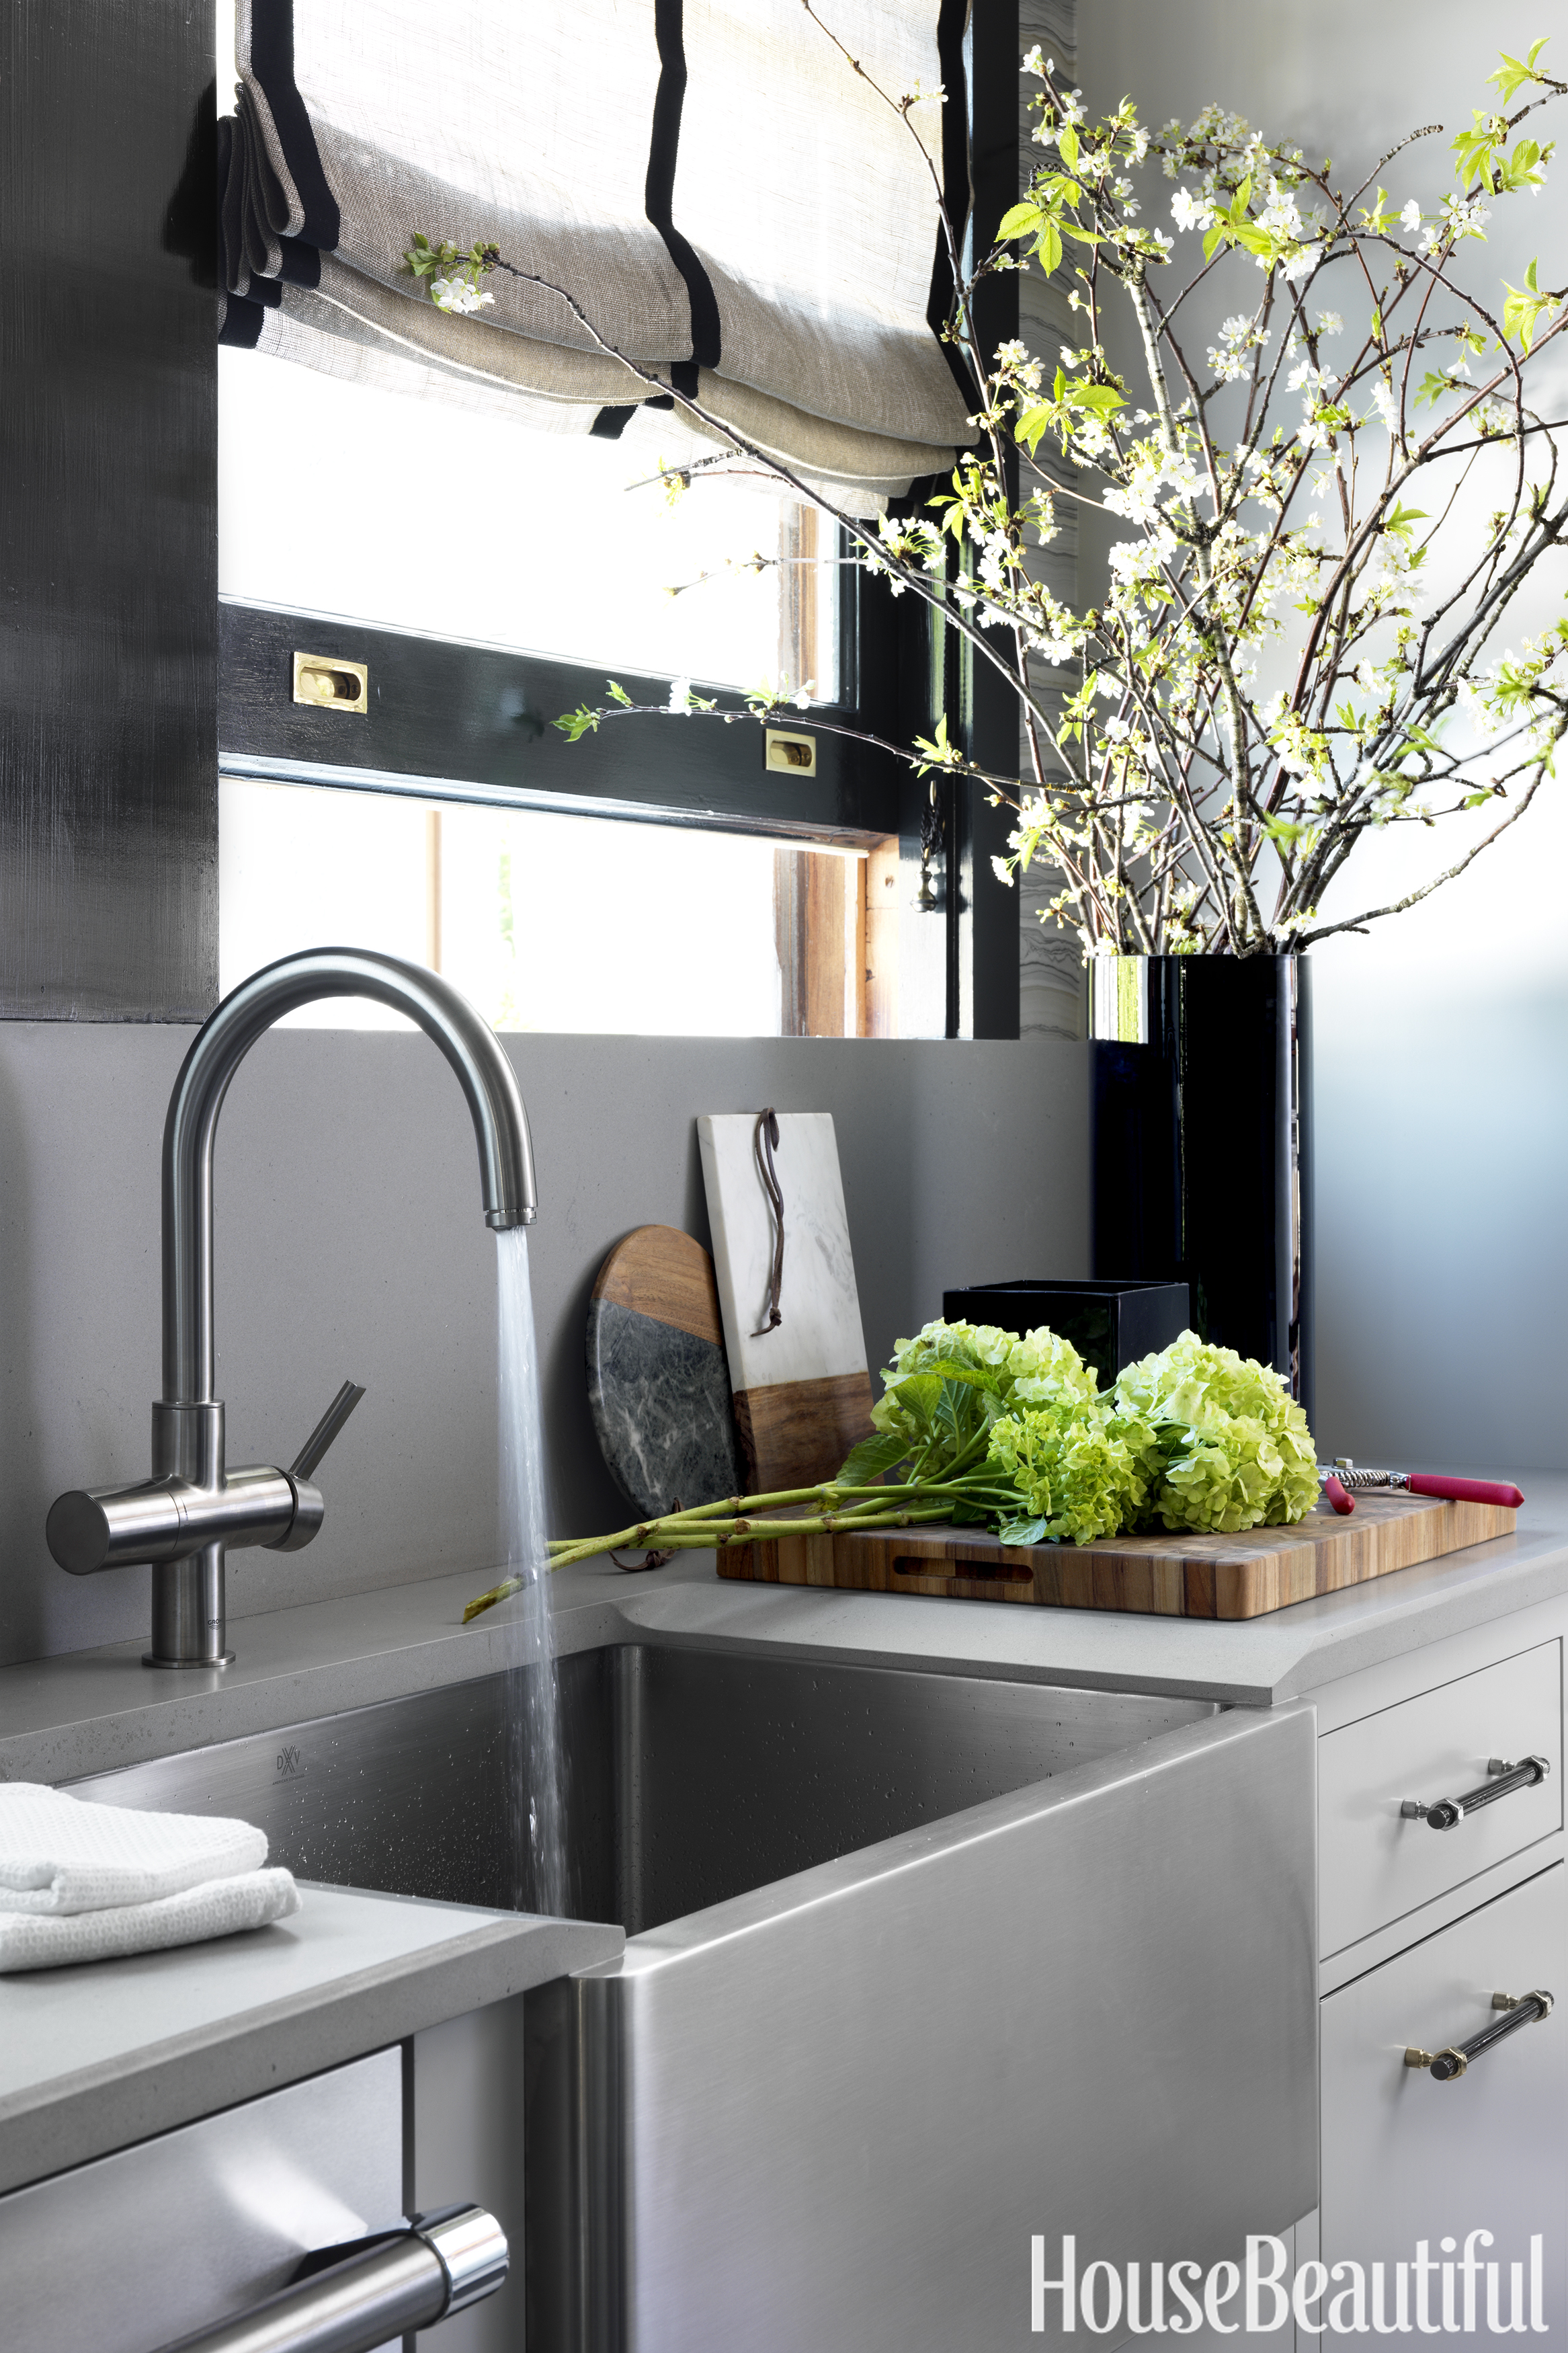 30 Best Small Kitchen Design Ideas - Decorating Solutions ... on Best Small Kitchens  id=60934